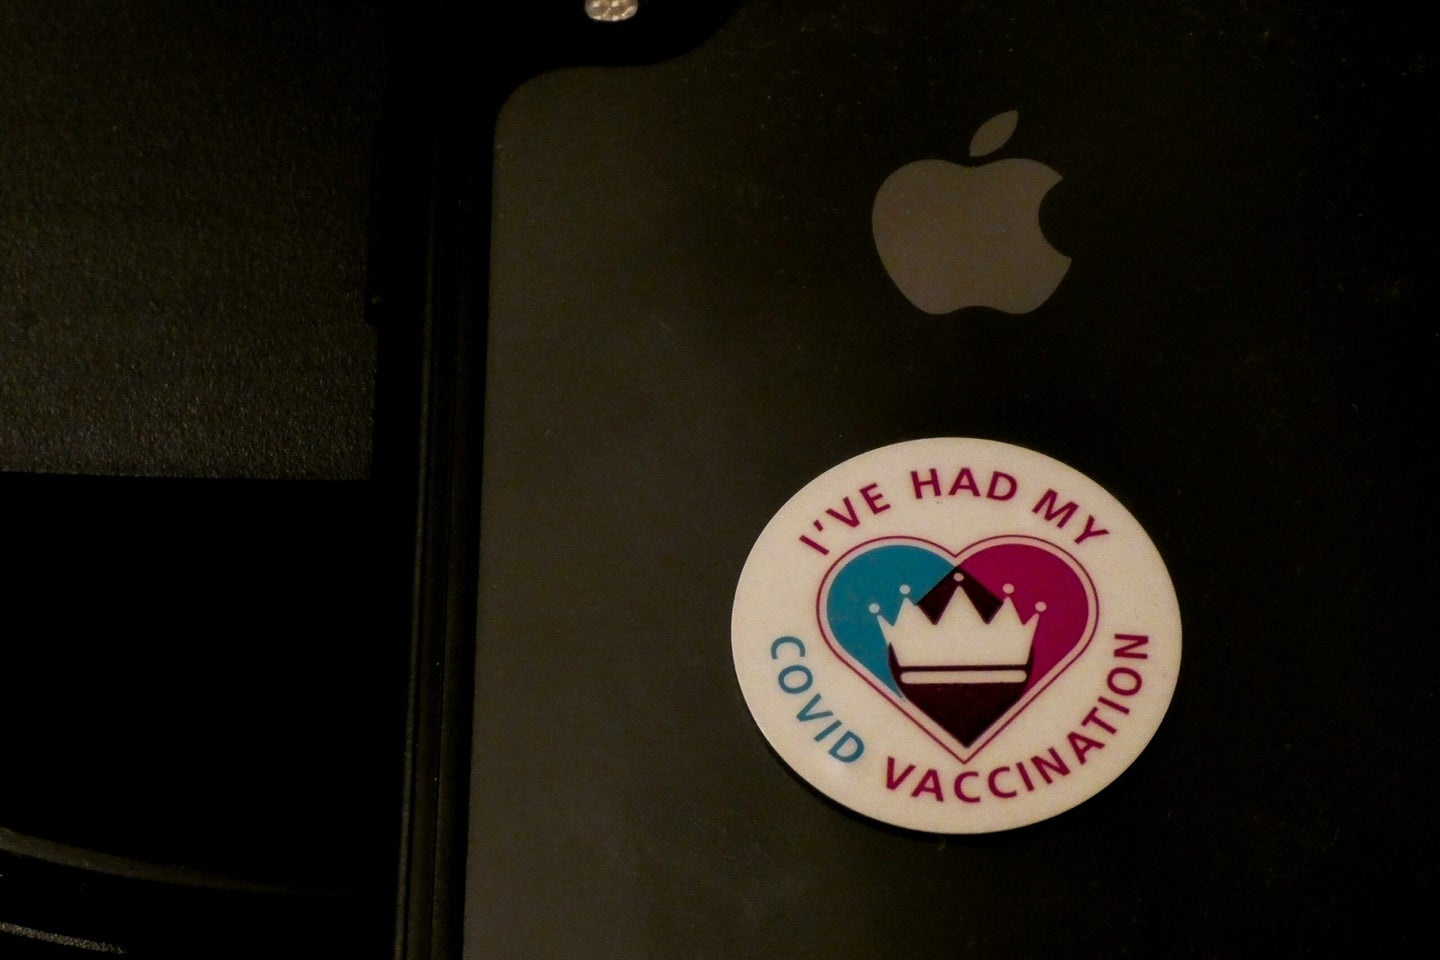 """Sticker on laptop that says """"I've had my COVID vaccination"""""""